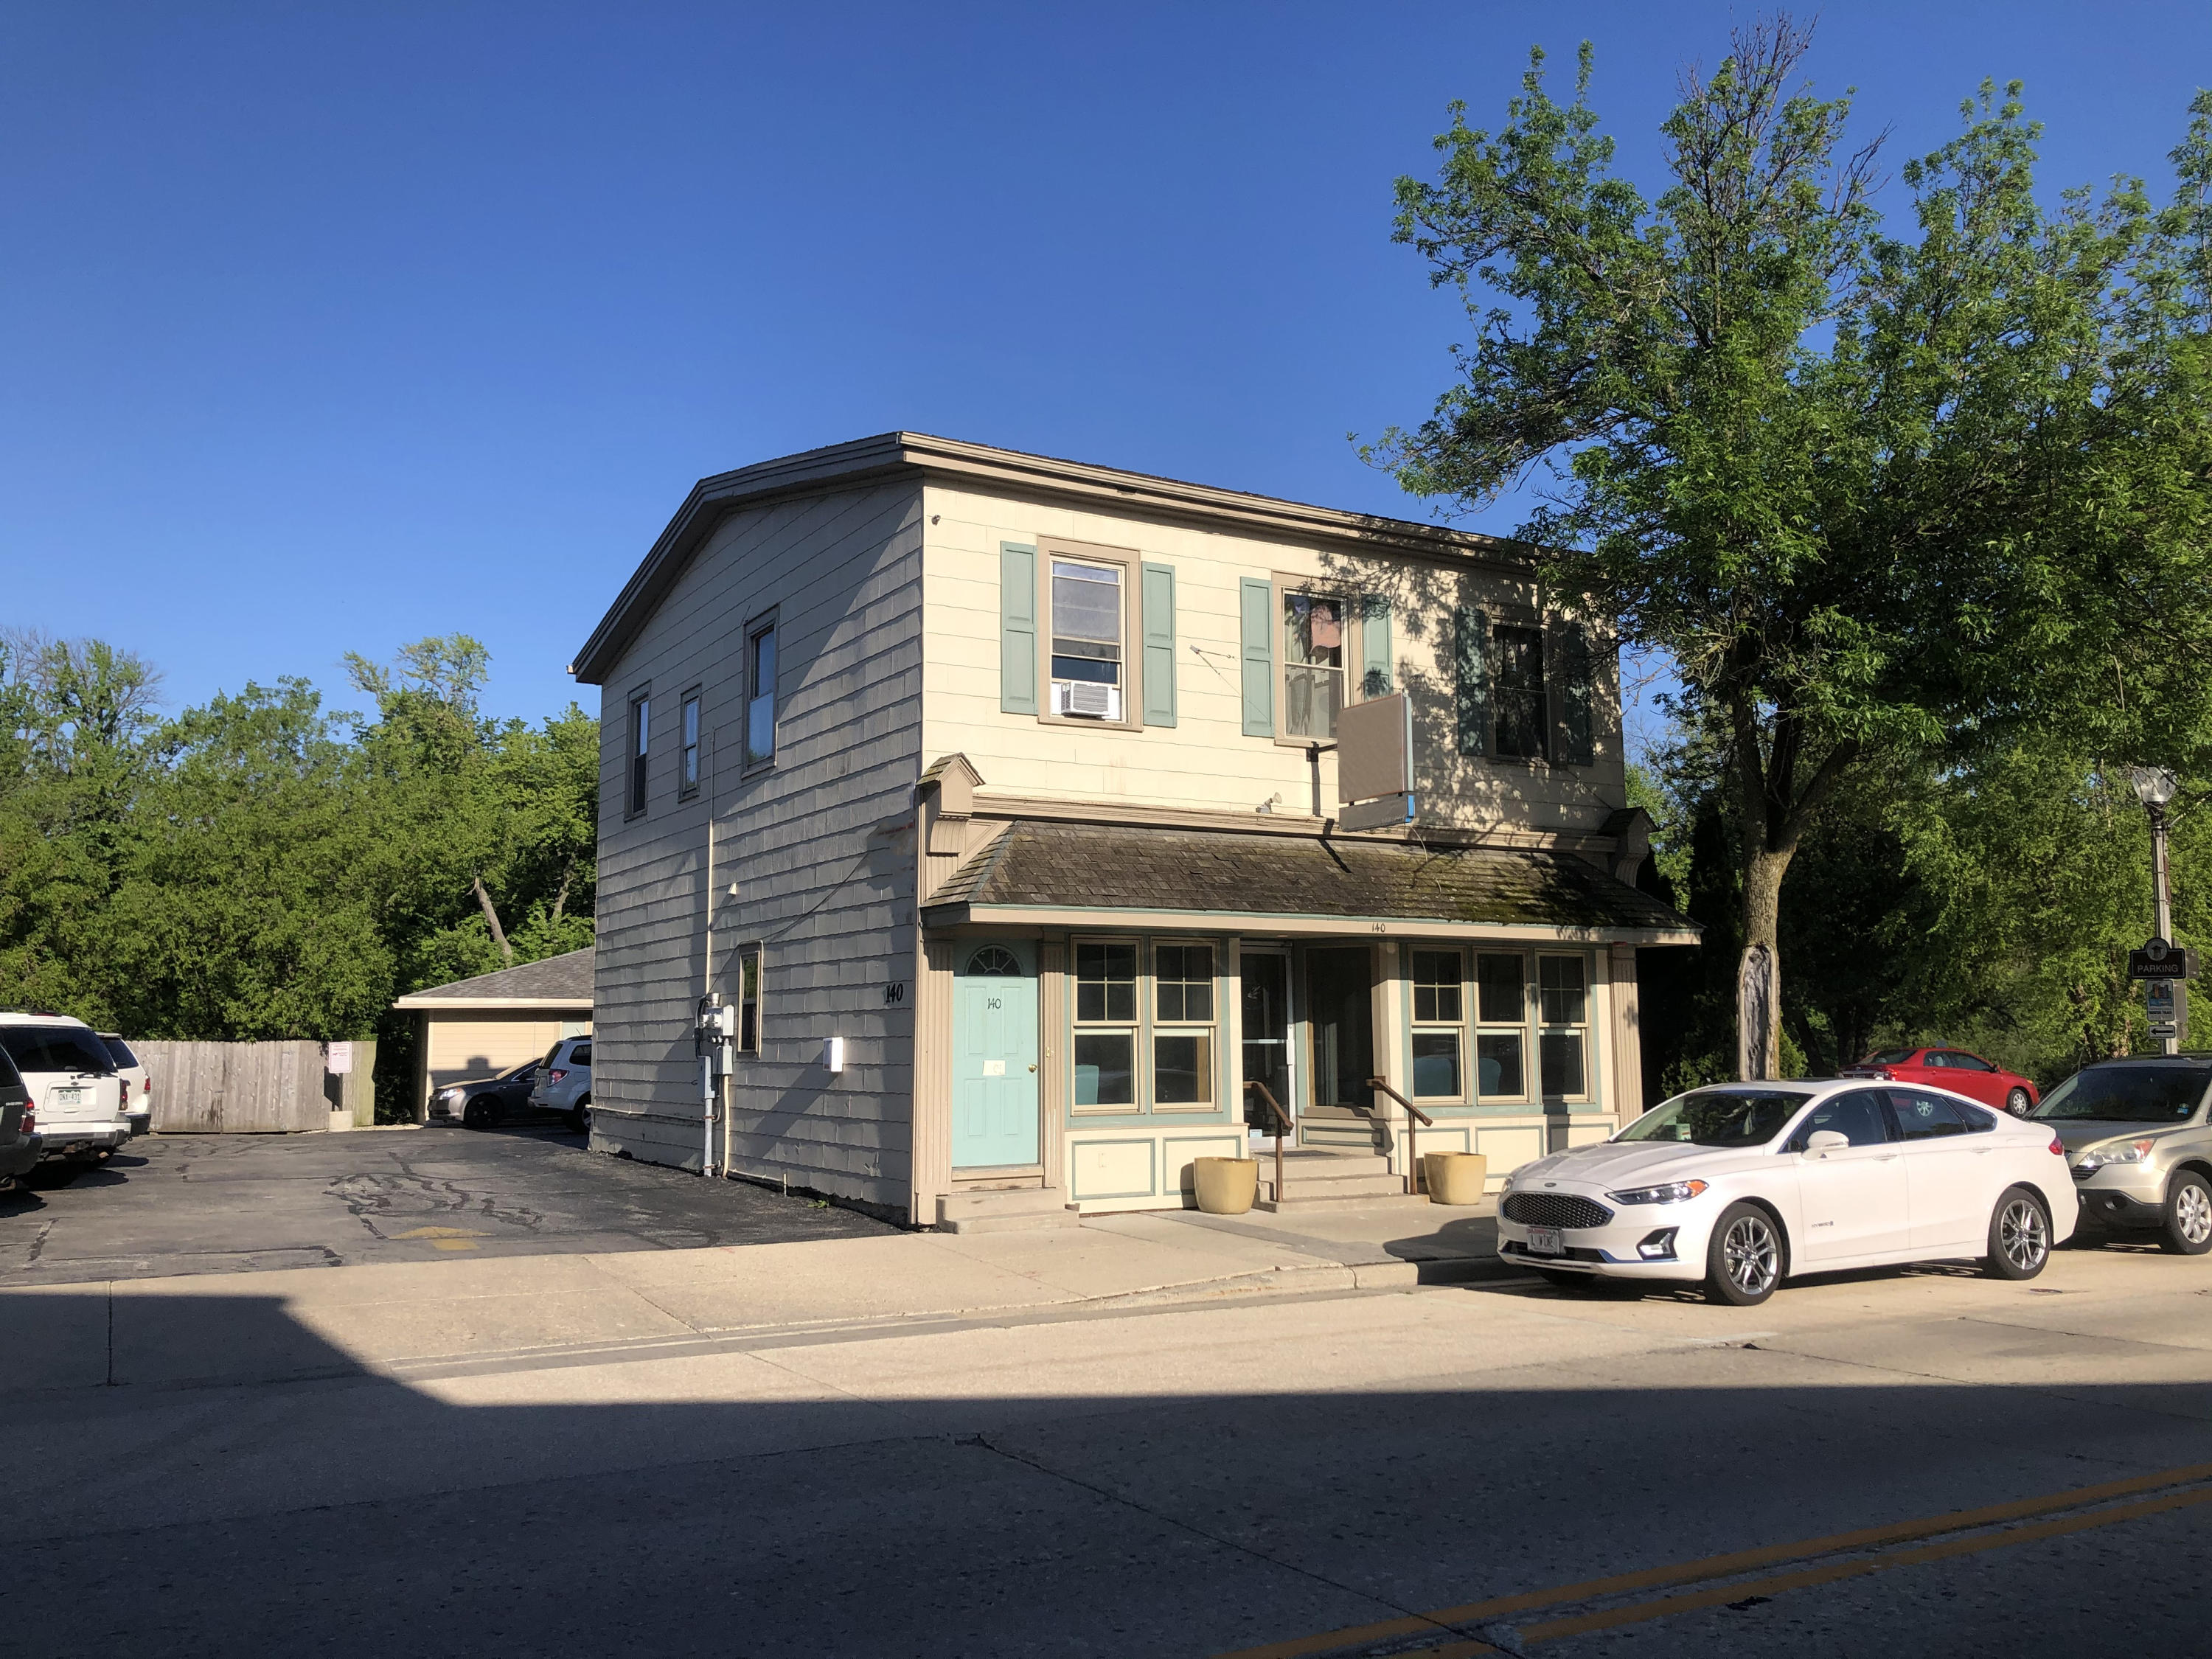 Photo of 140 S Main St, Thiensville, WI 53092